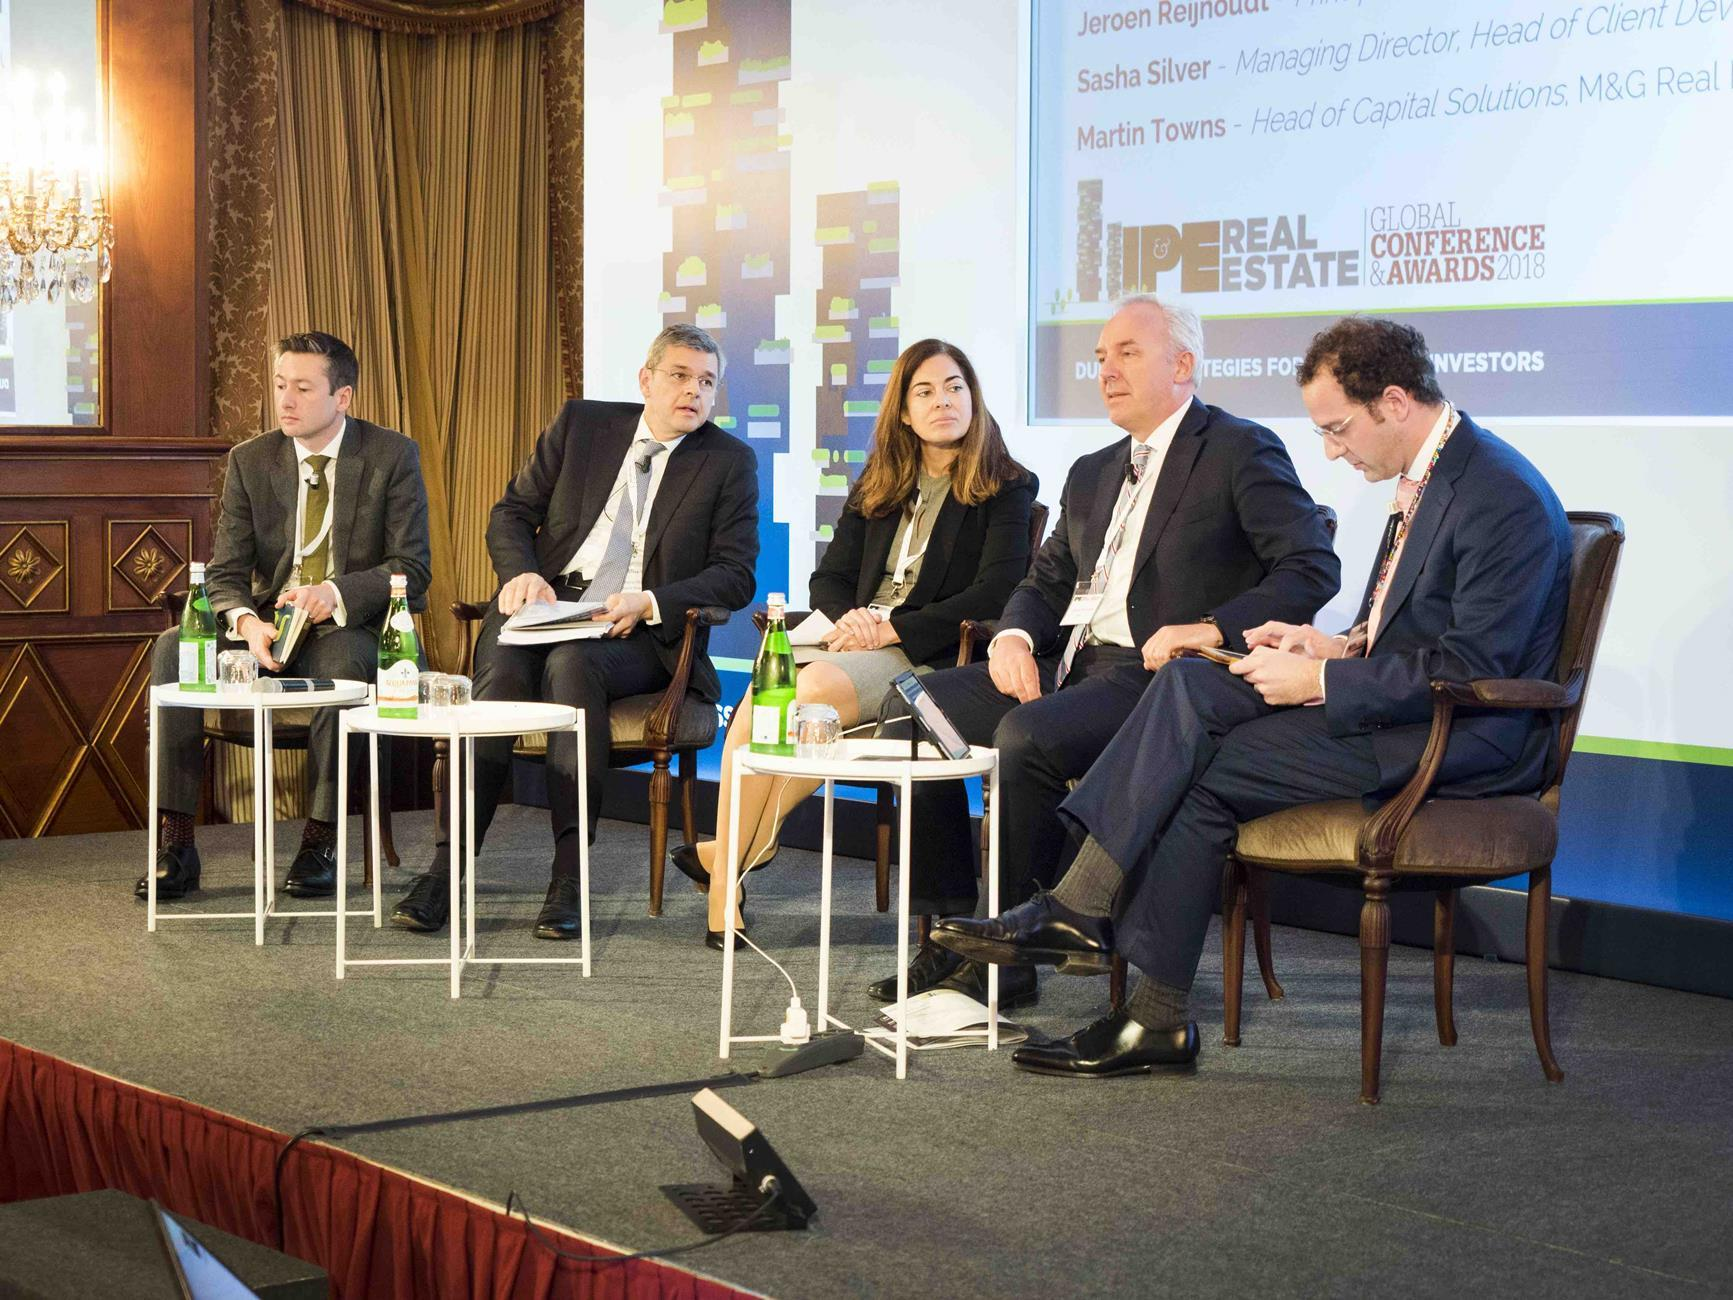 Investment structures panel at the IPE Real Estate conference in Milan